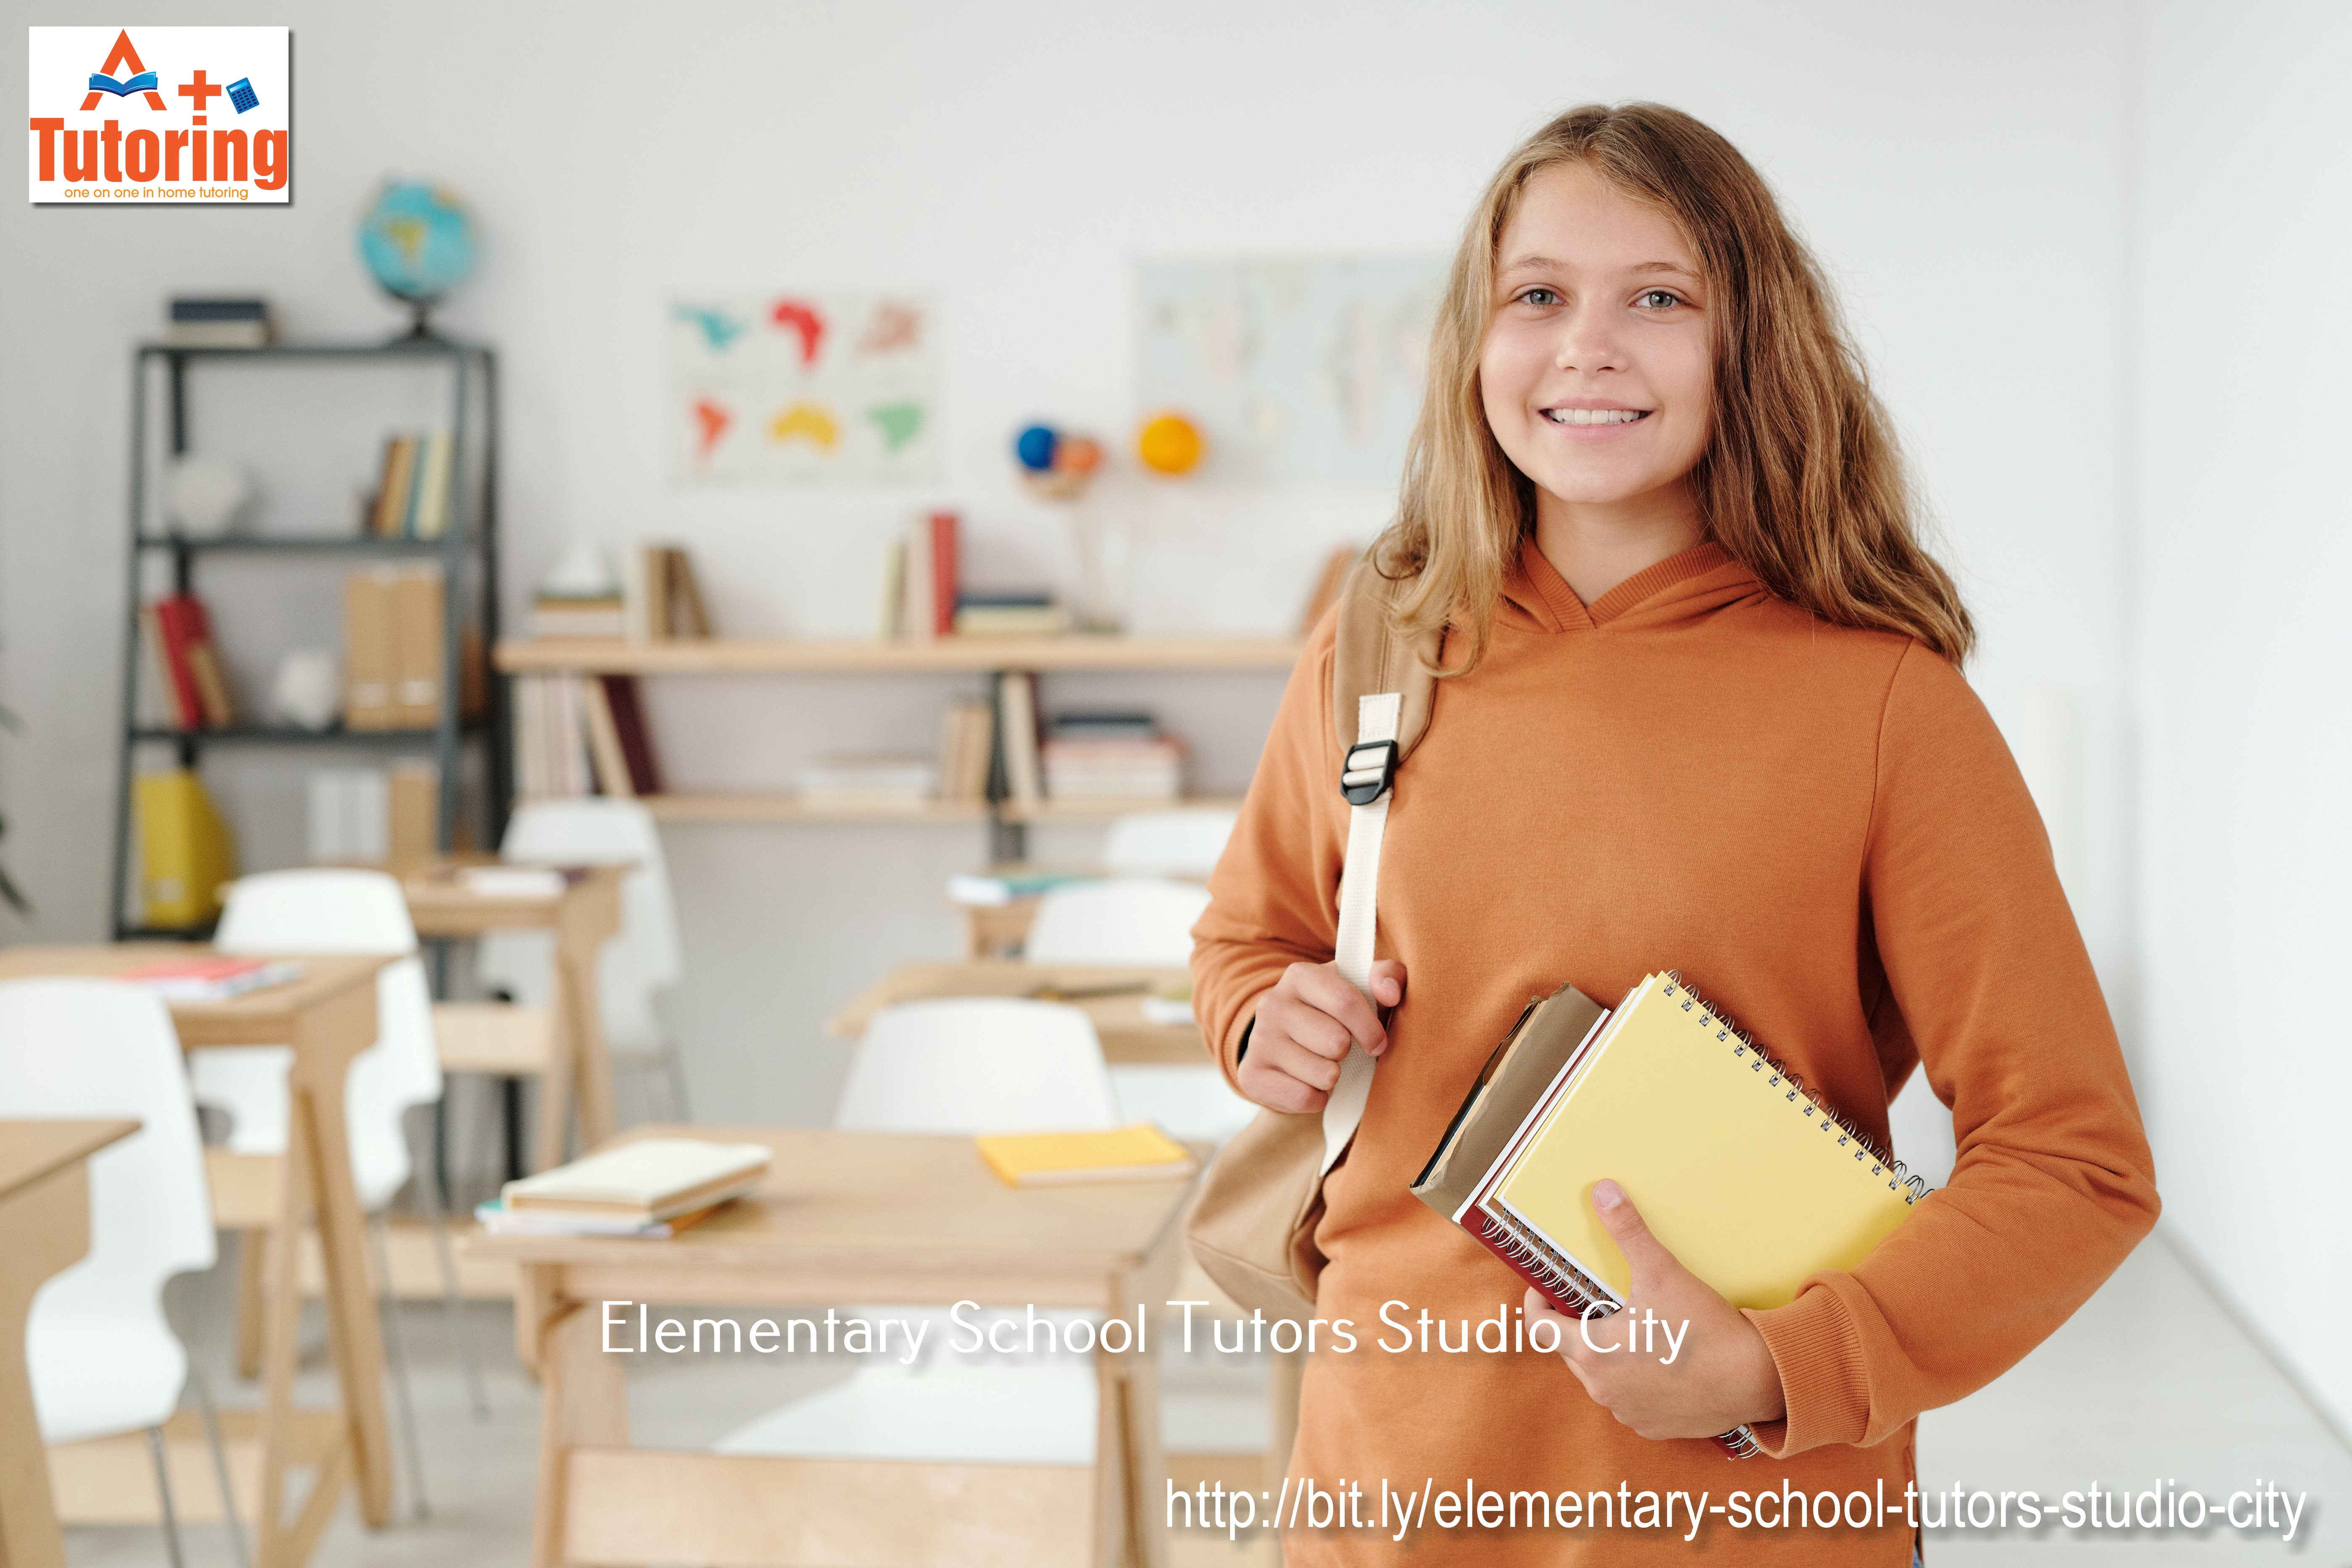 A+ Tutoring in Studio City Reveals Reasons Why A Child Would Need Tutoring